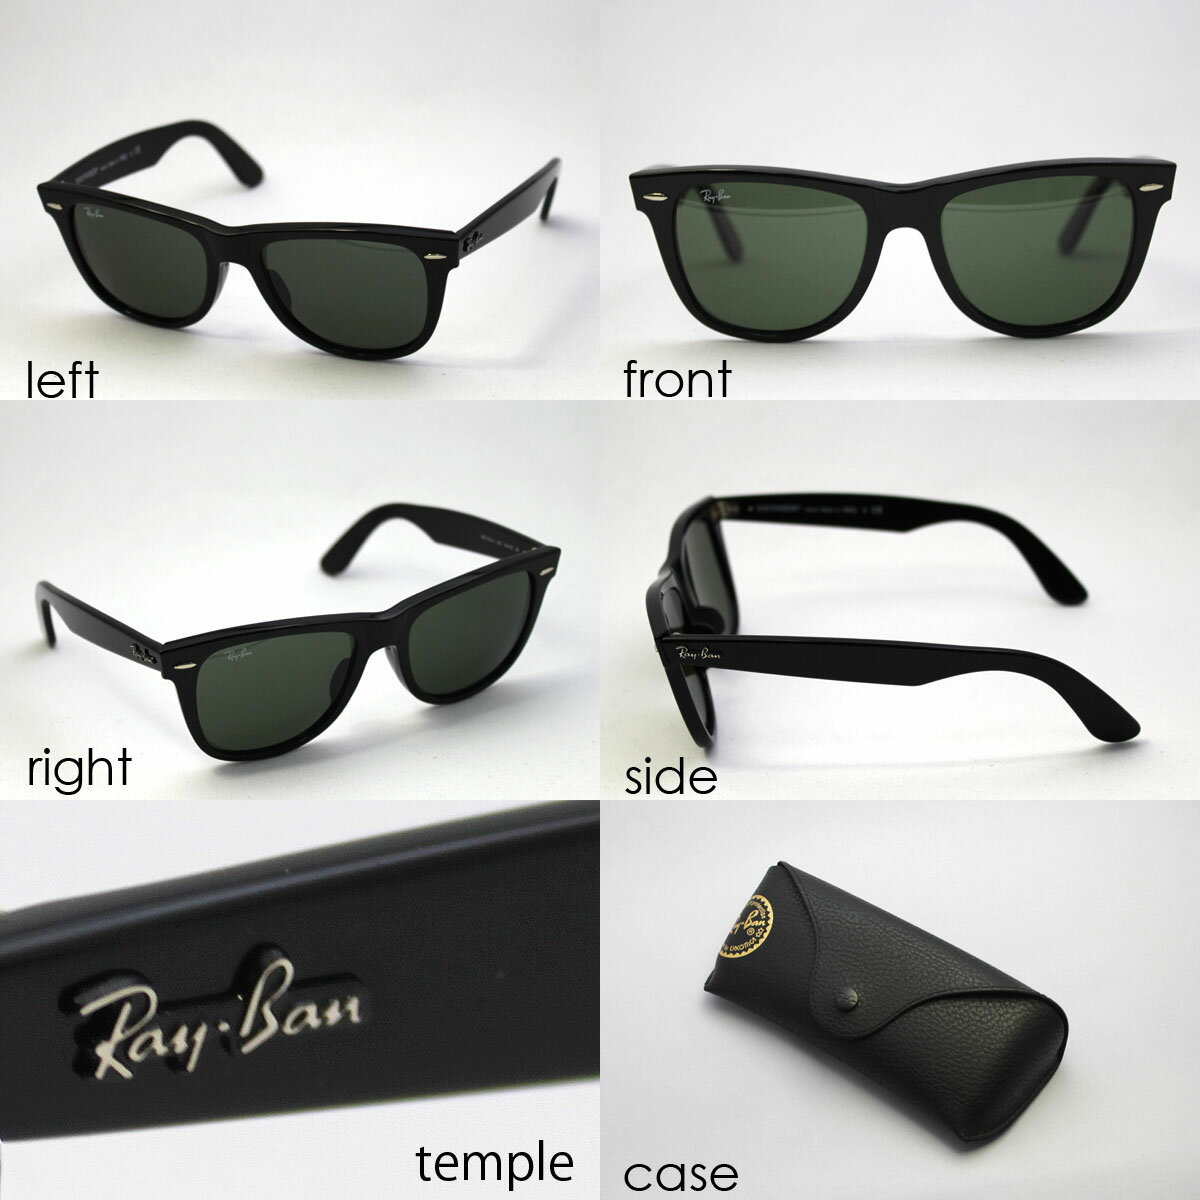 Ray Ban Sunglasses Stickers decals 2 Sheets of 8 Brand New Rare